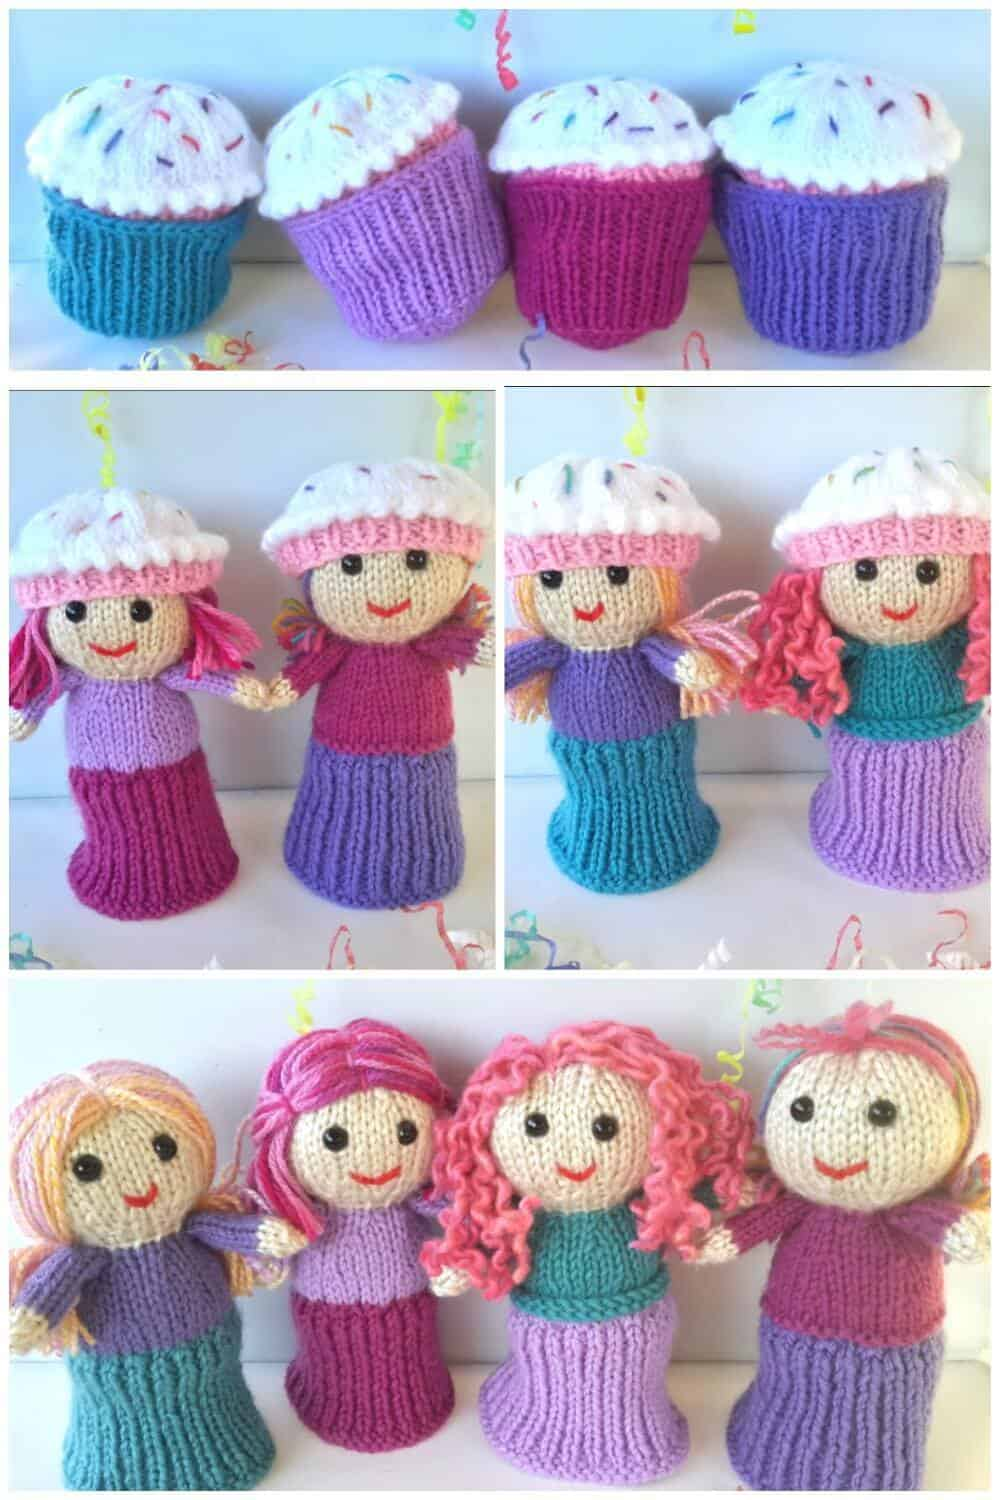 Knitted cupcake dolls